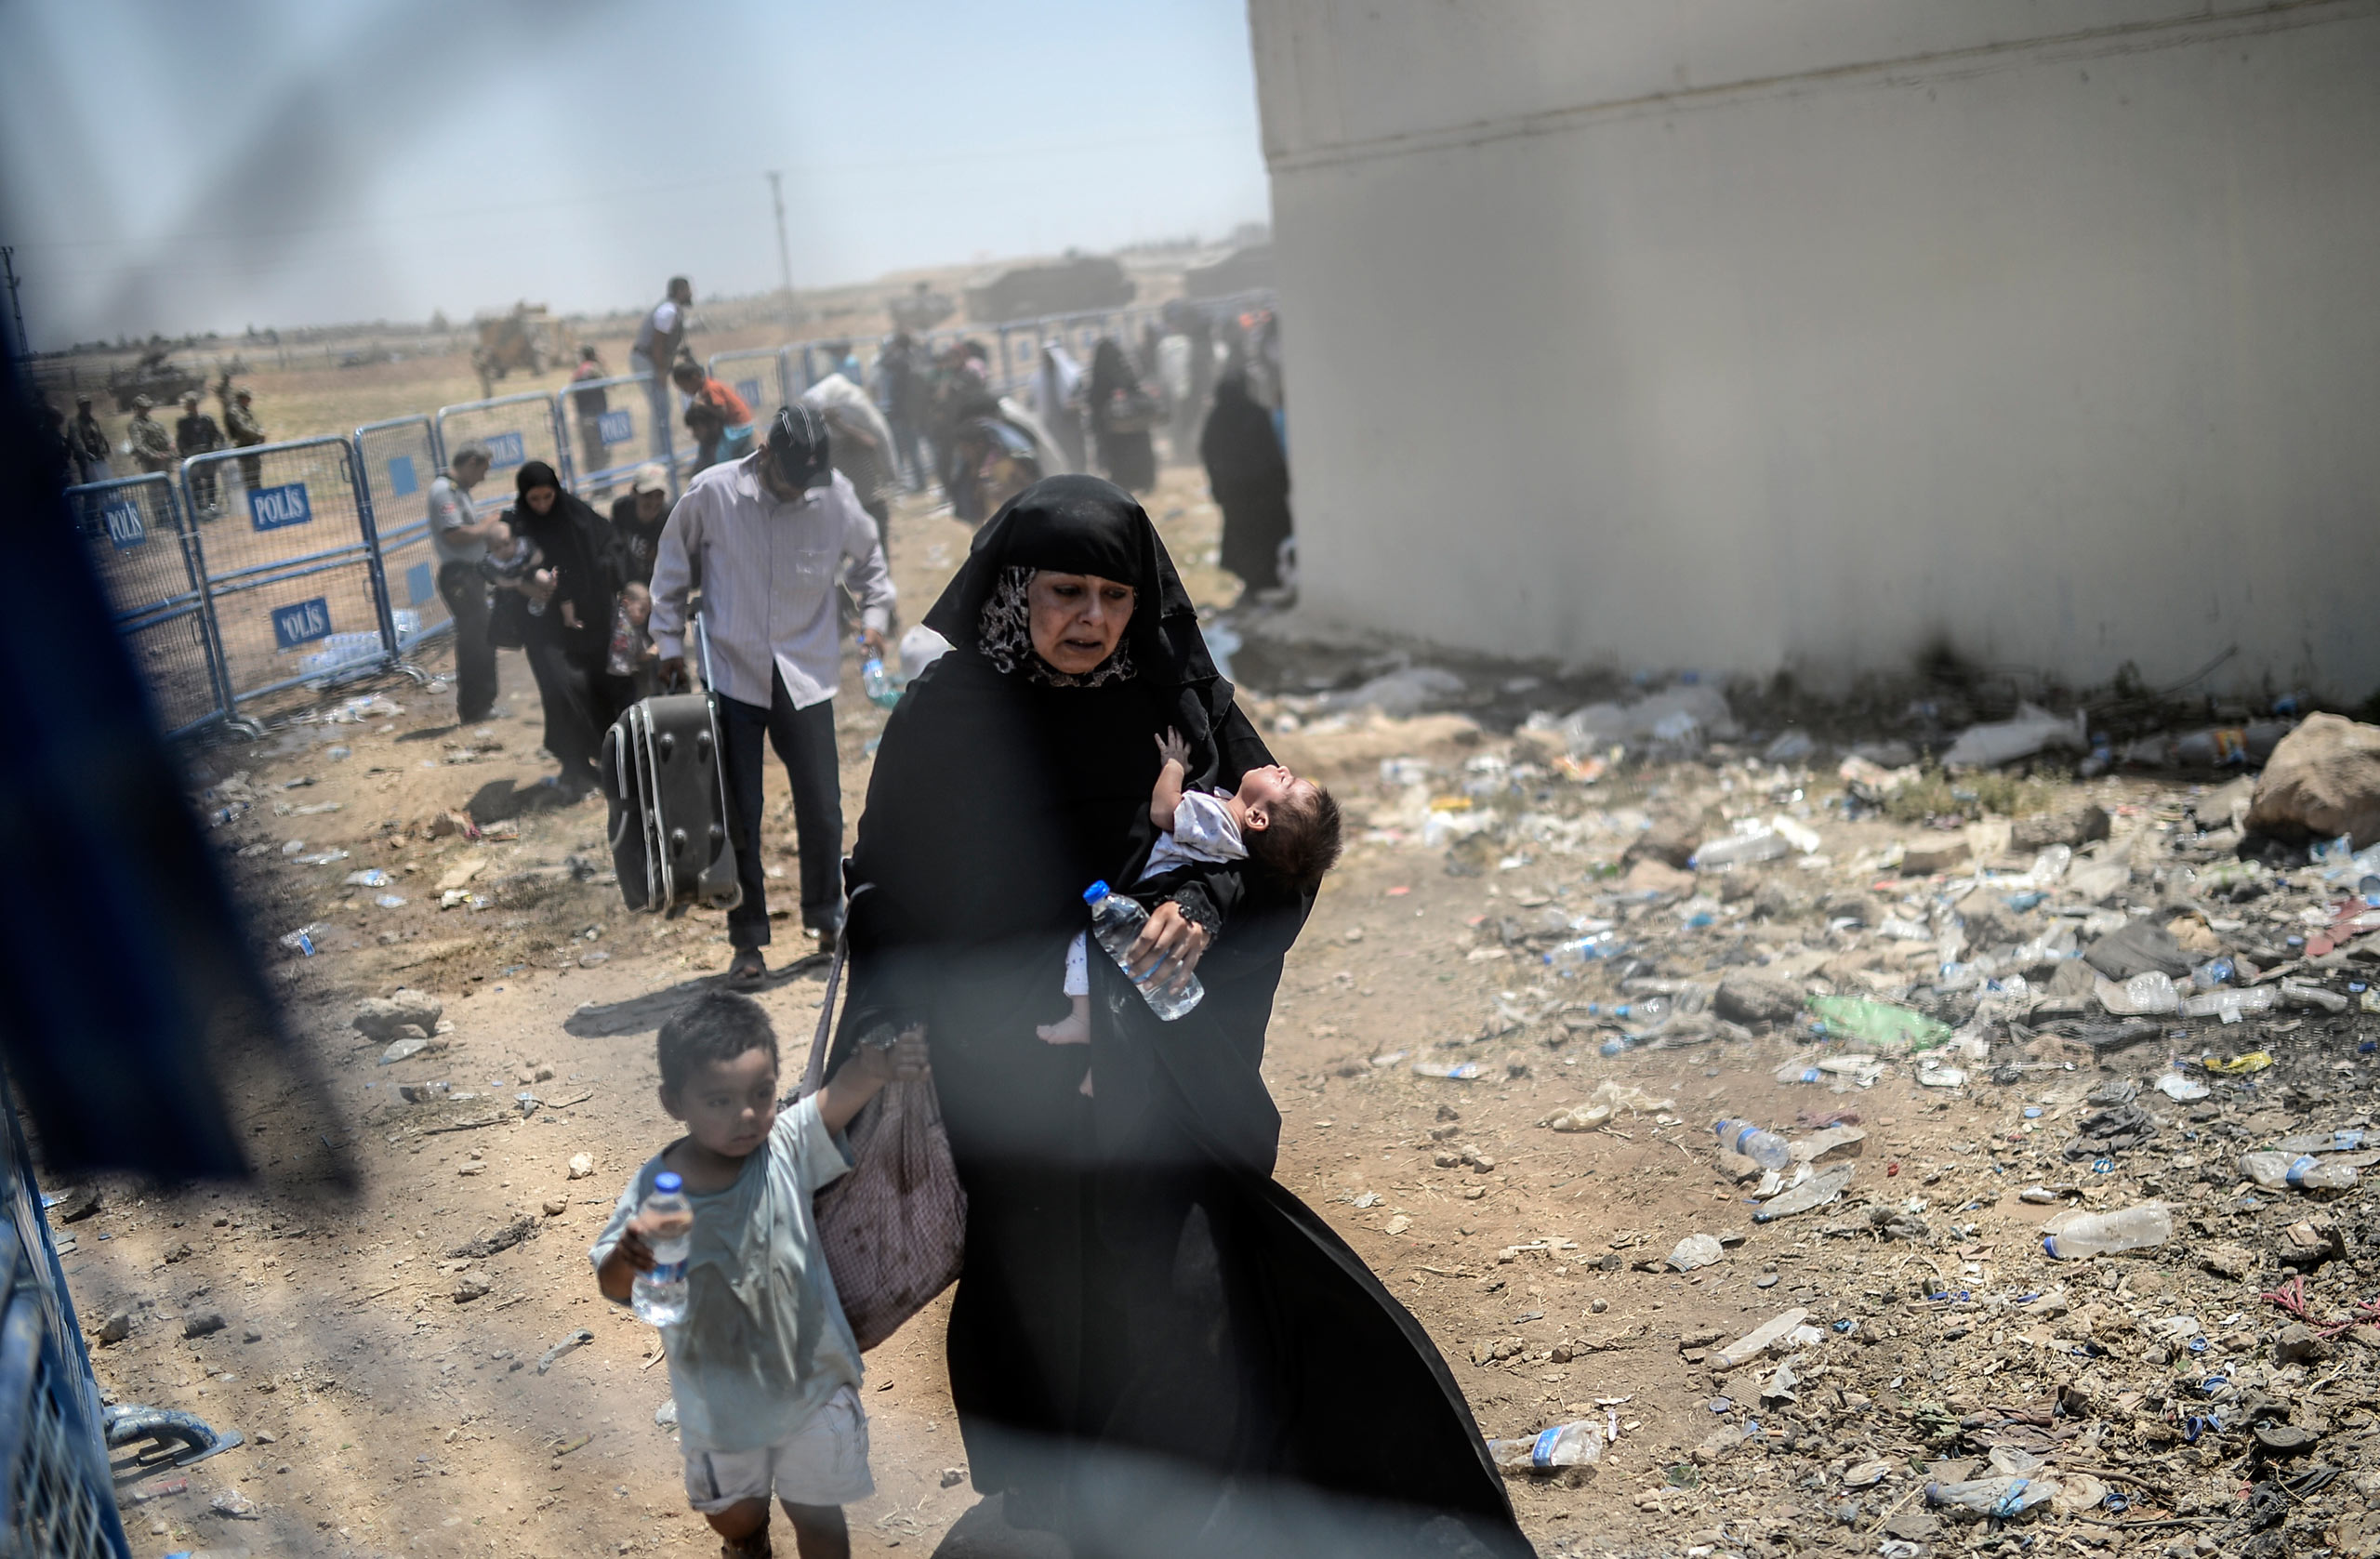 A Syrian woman fleeing her war-torn country with her children enters Turkey through the Turkish crossing gate in Akçakale, in the Şanlıurfa province. June 15, 2015.